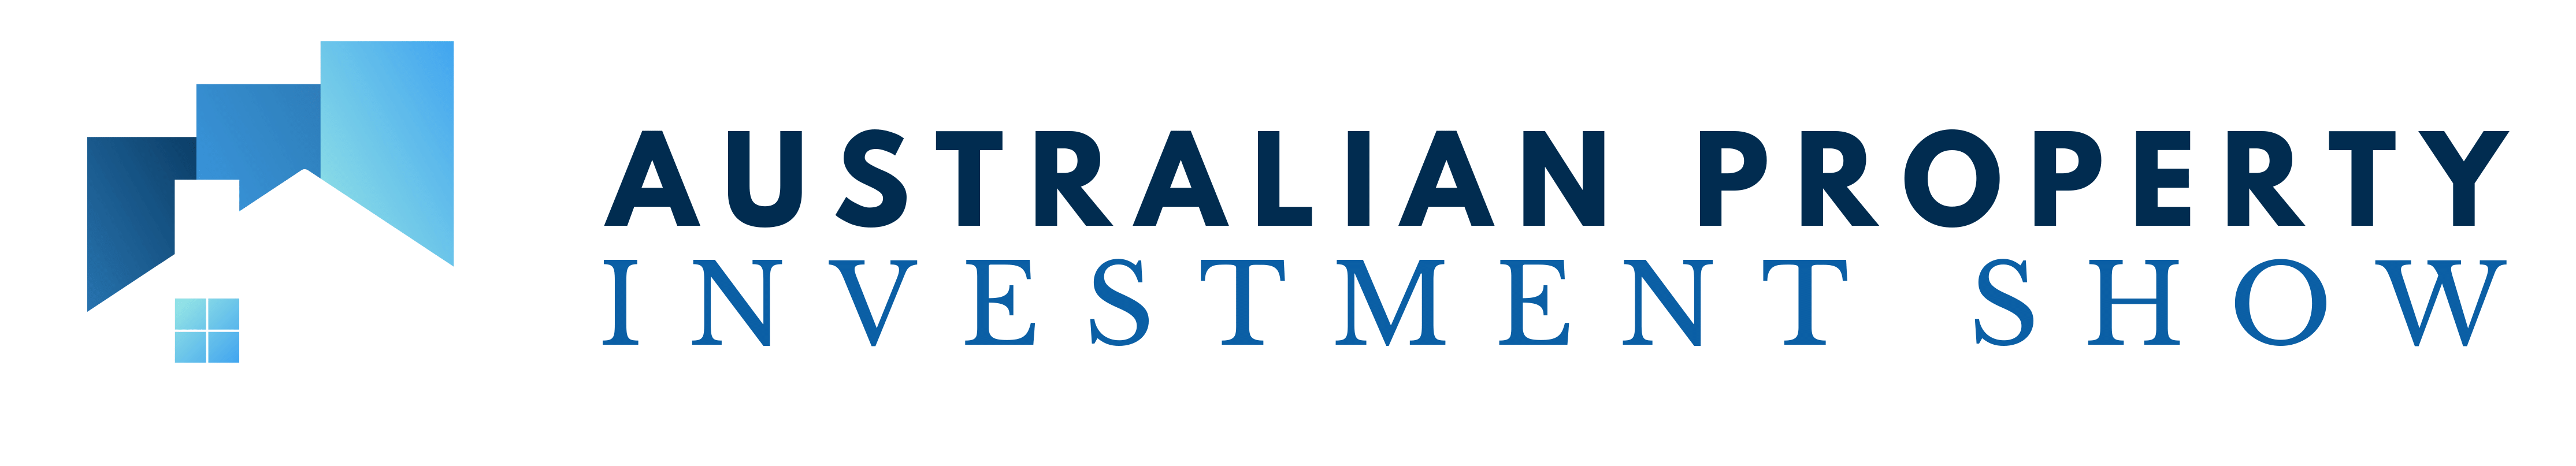 Australian Property Investment Show